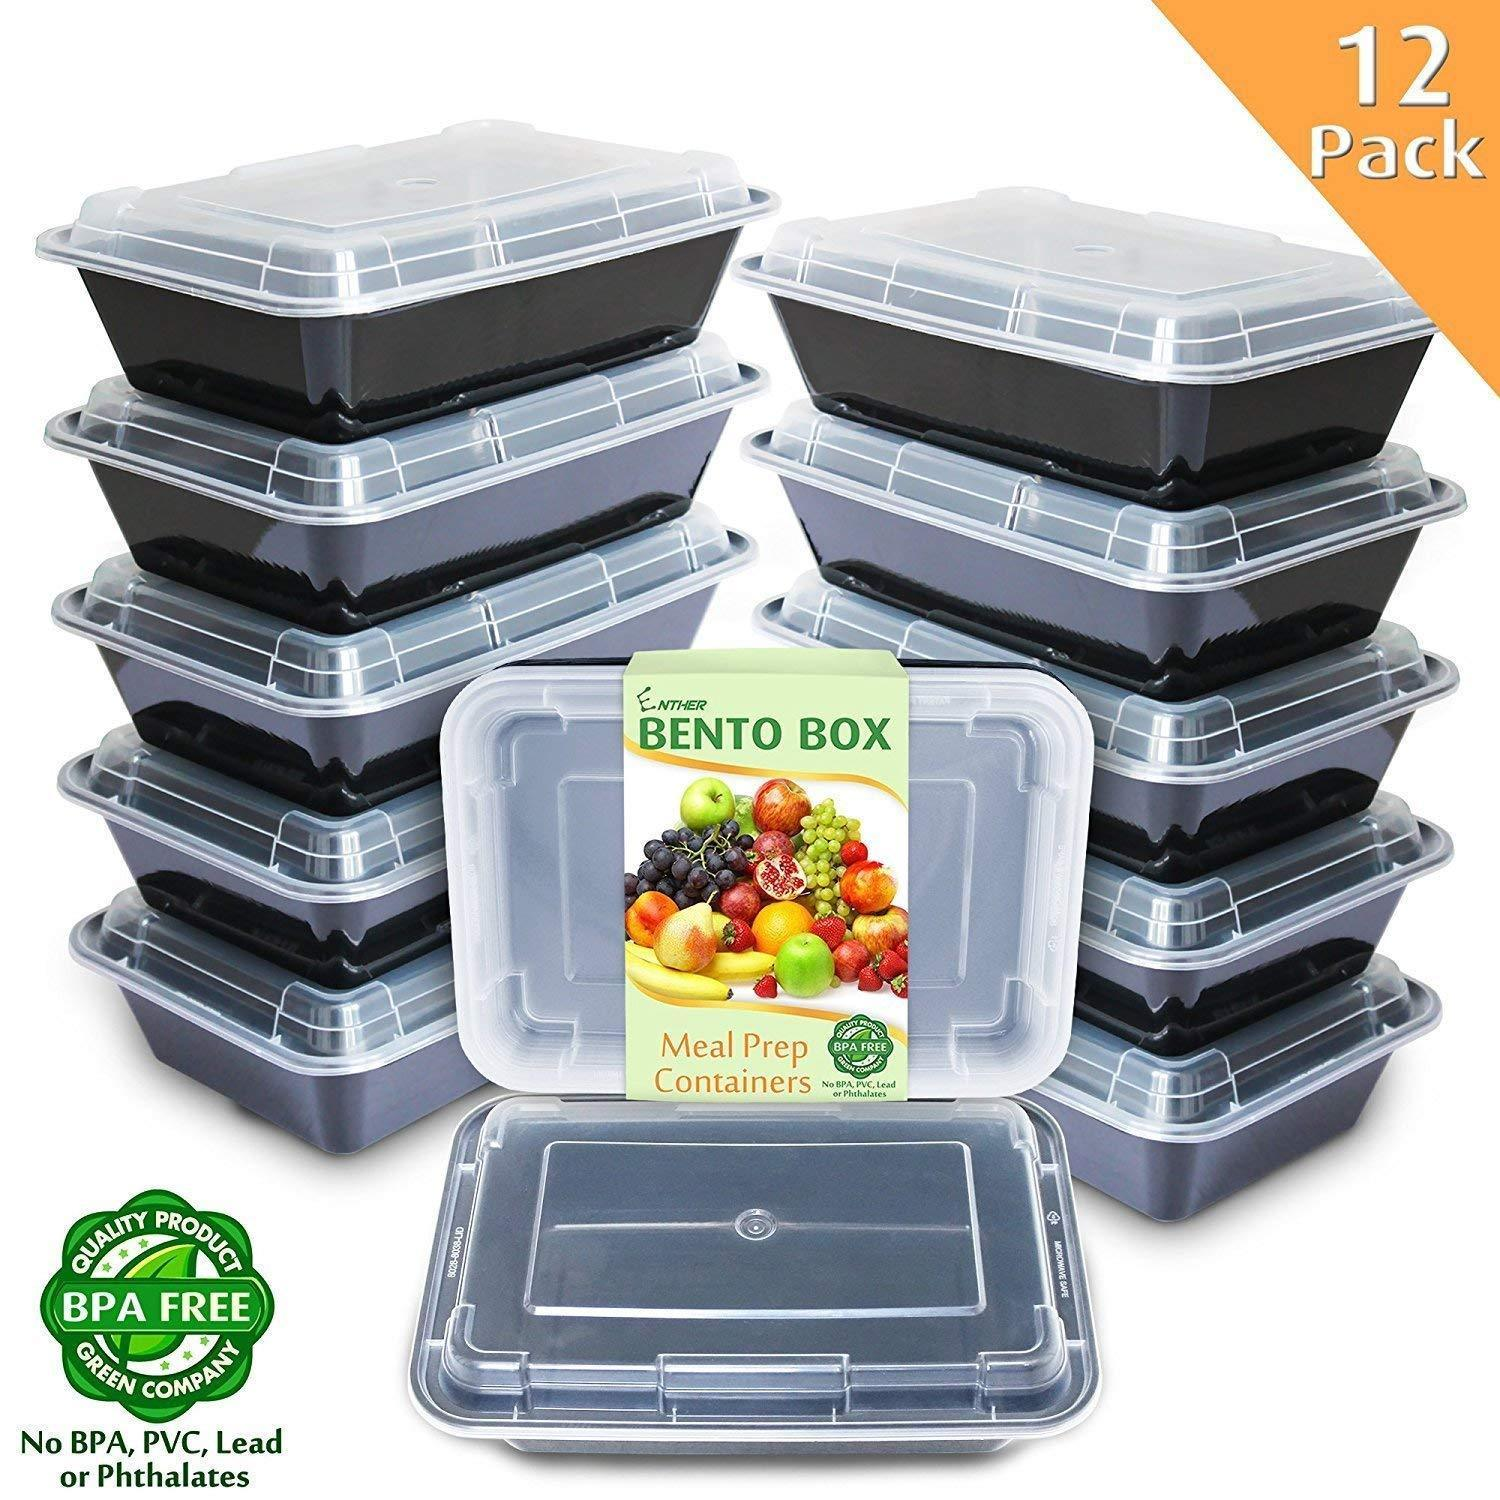 Meal Prep Containers [12 Pack] 1 Compartment with Lids Food Storage Bento Box 1